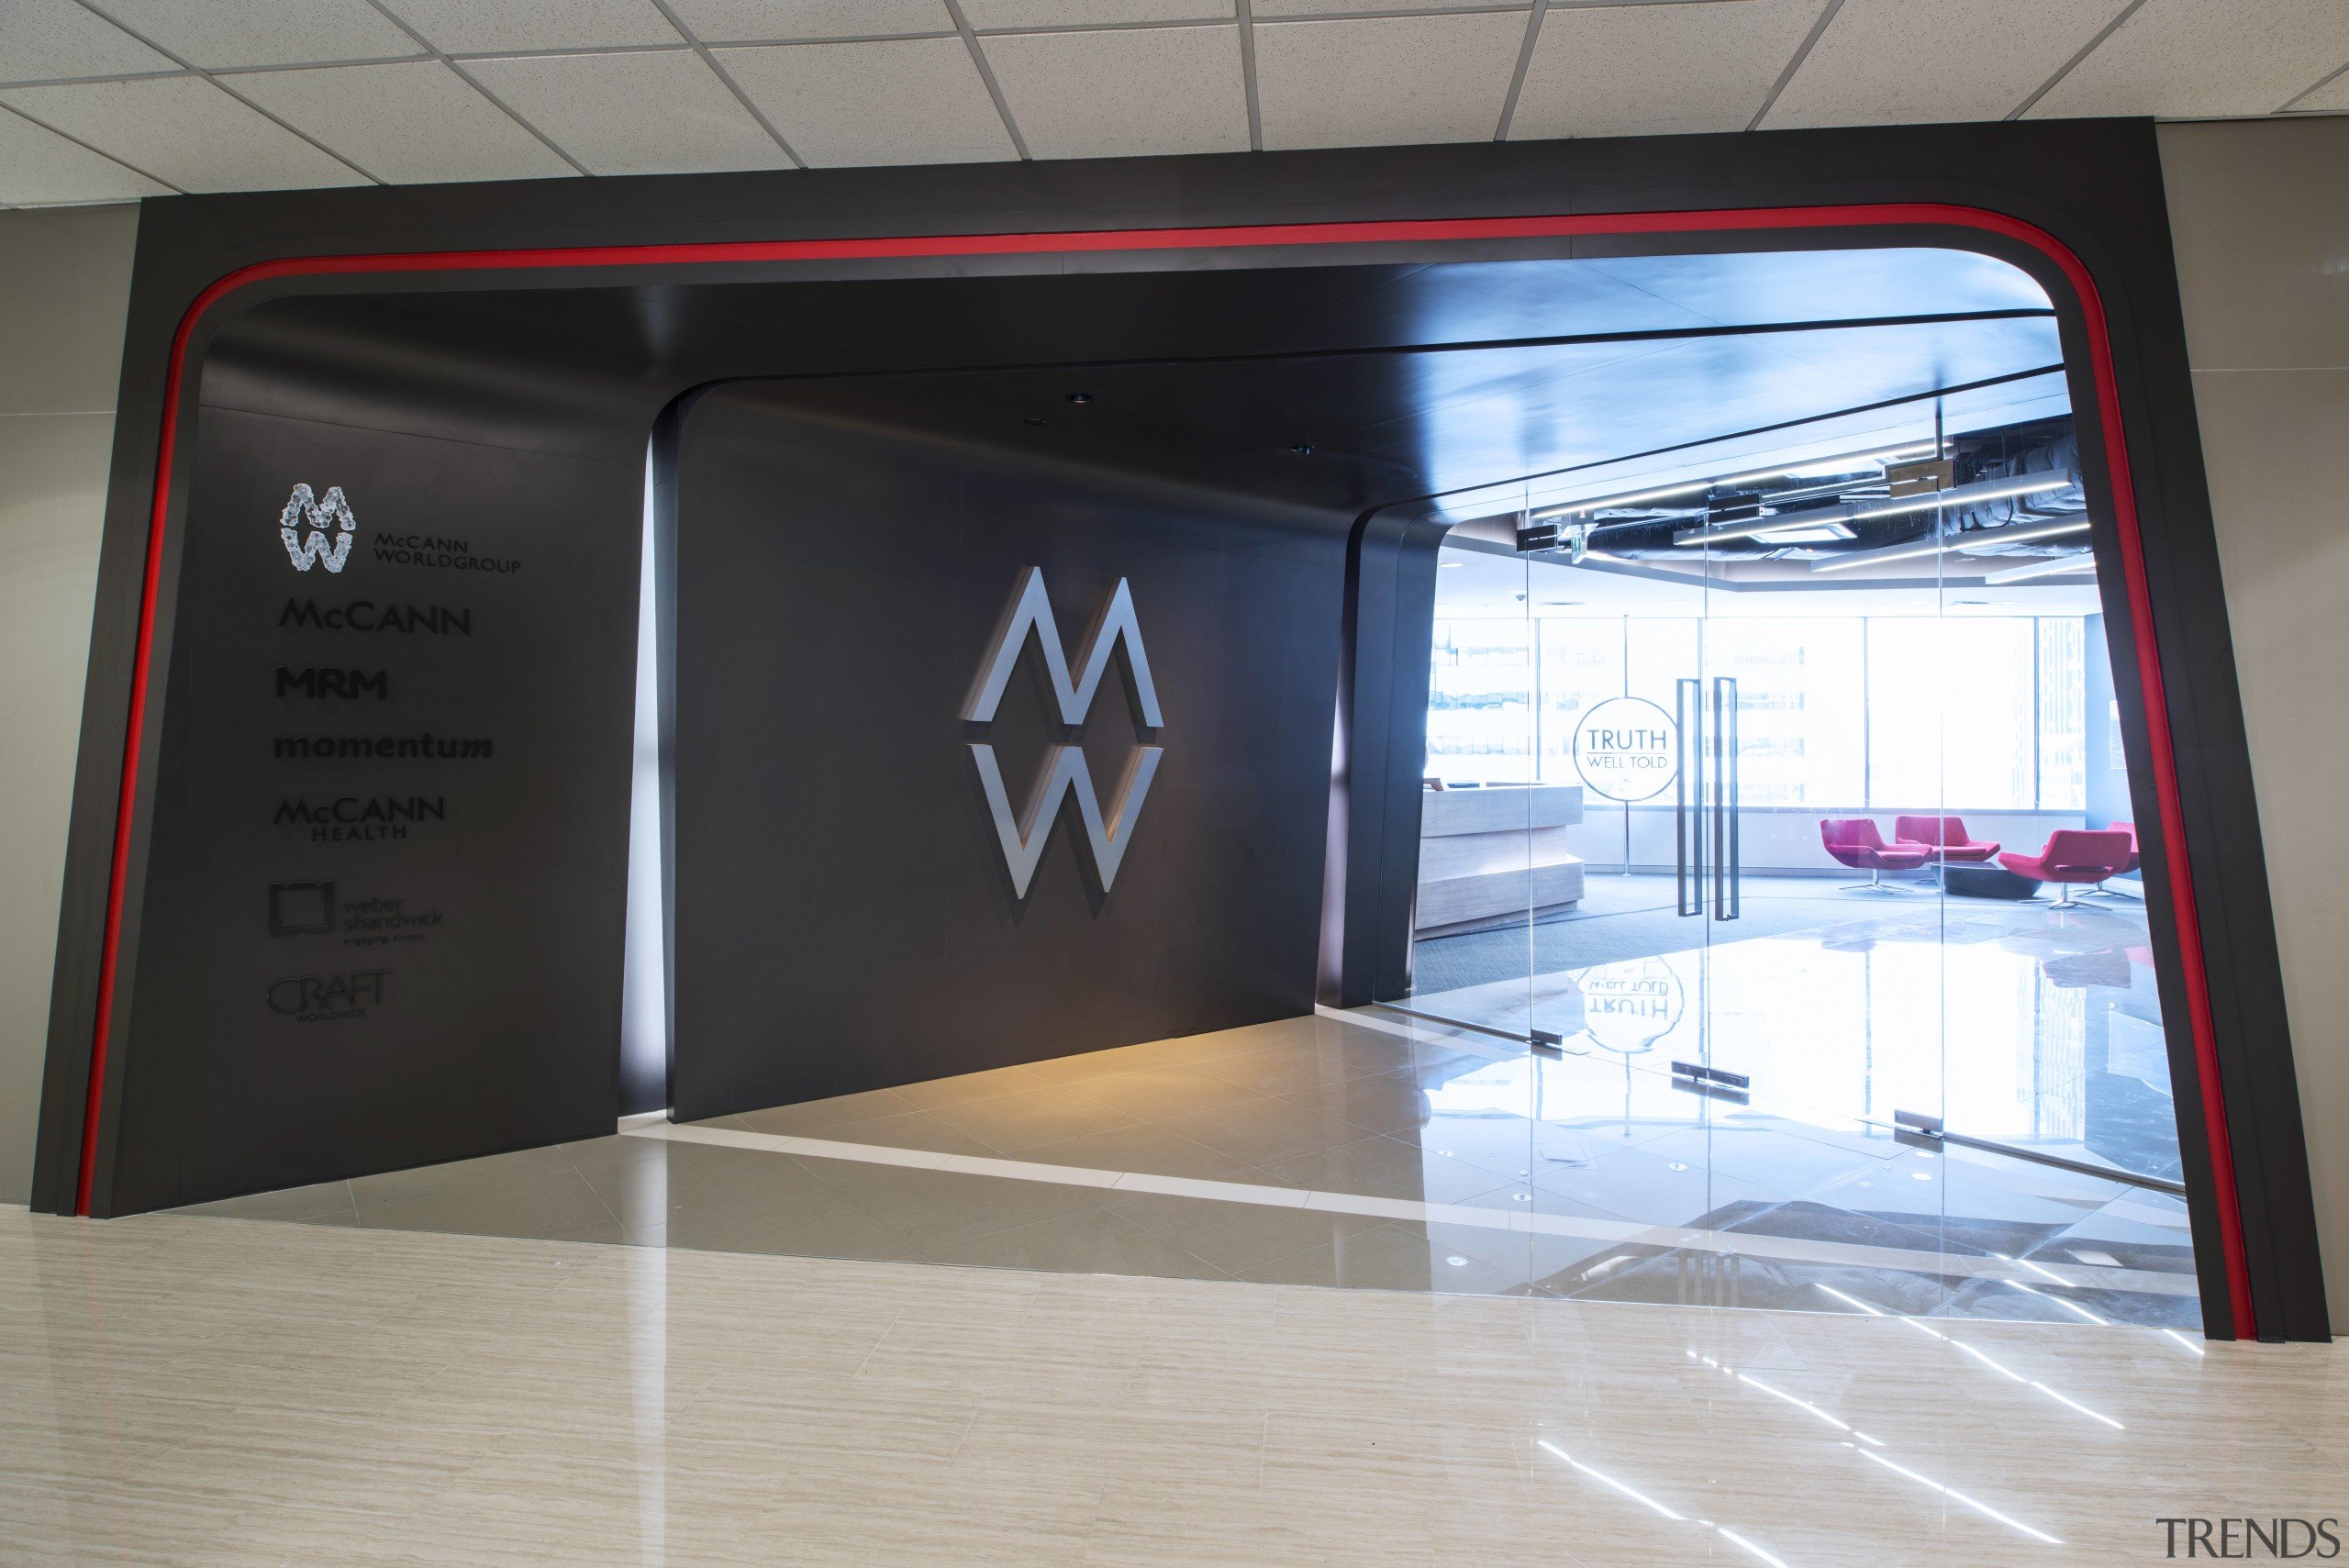 The entrance and reception area at McCann Worldgroups display device, product design, technology, gray, black